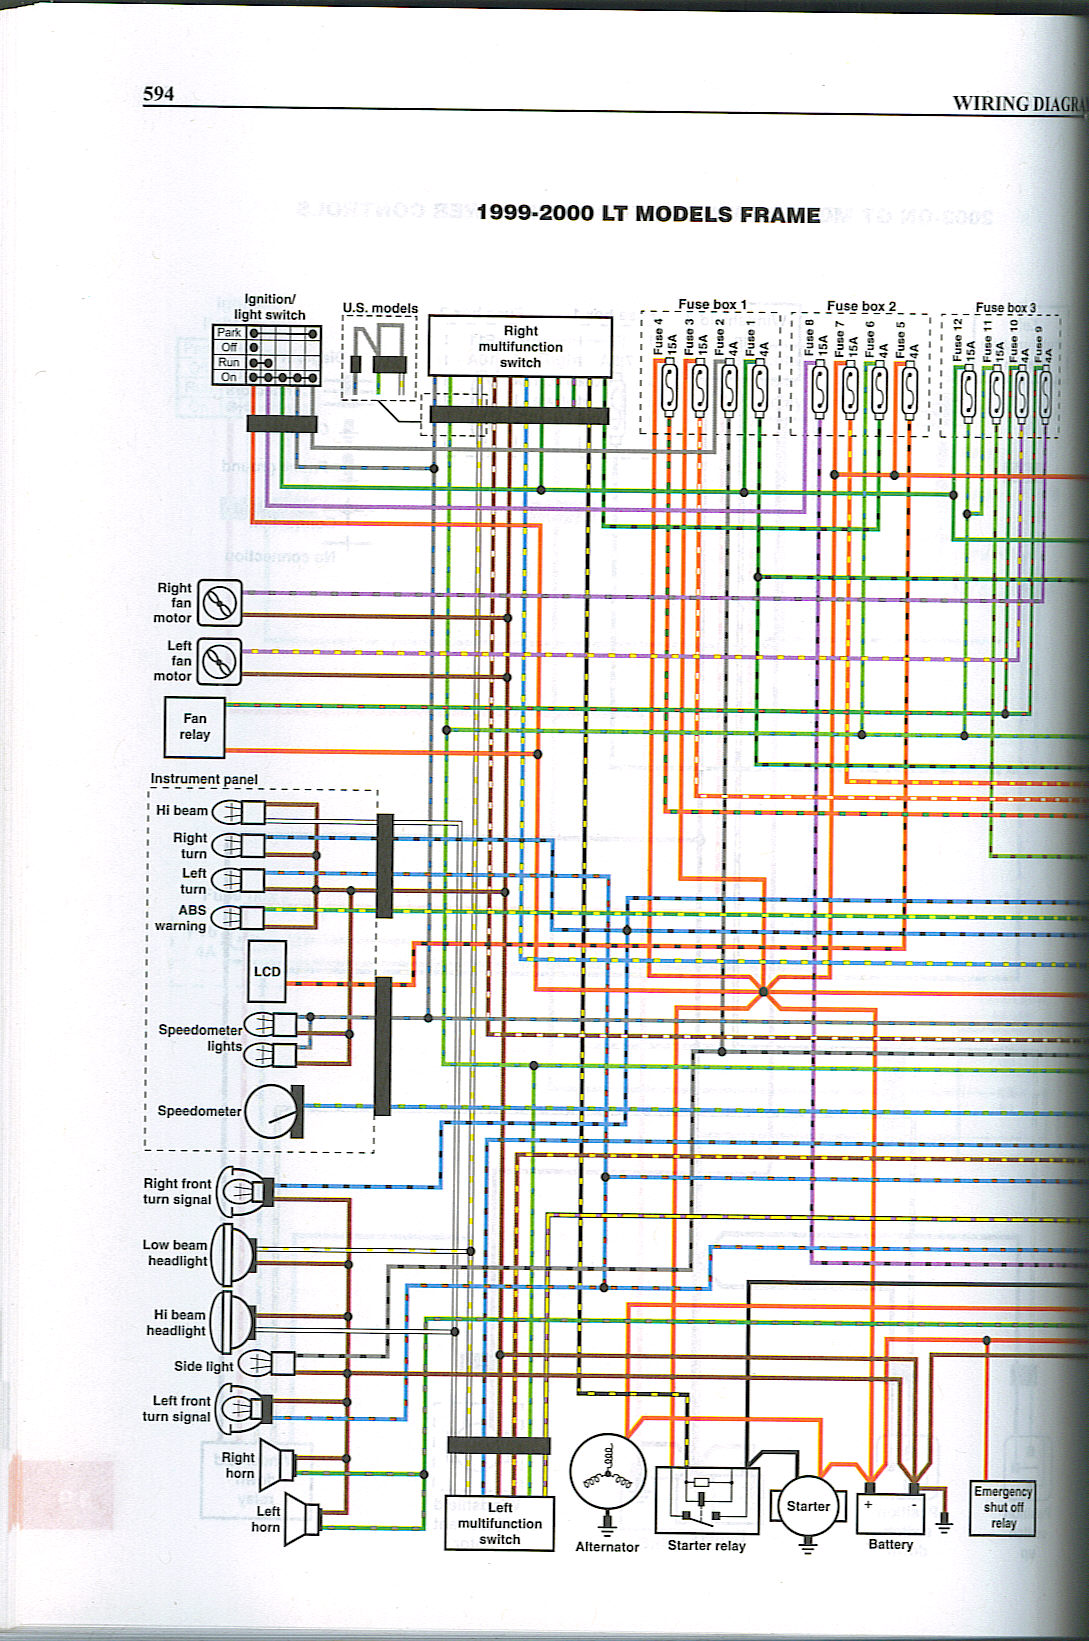 hight resolution of emergency shut off switch wiring diagram for